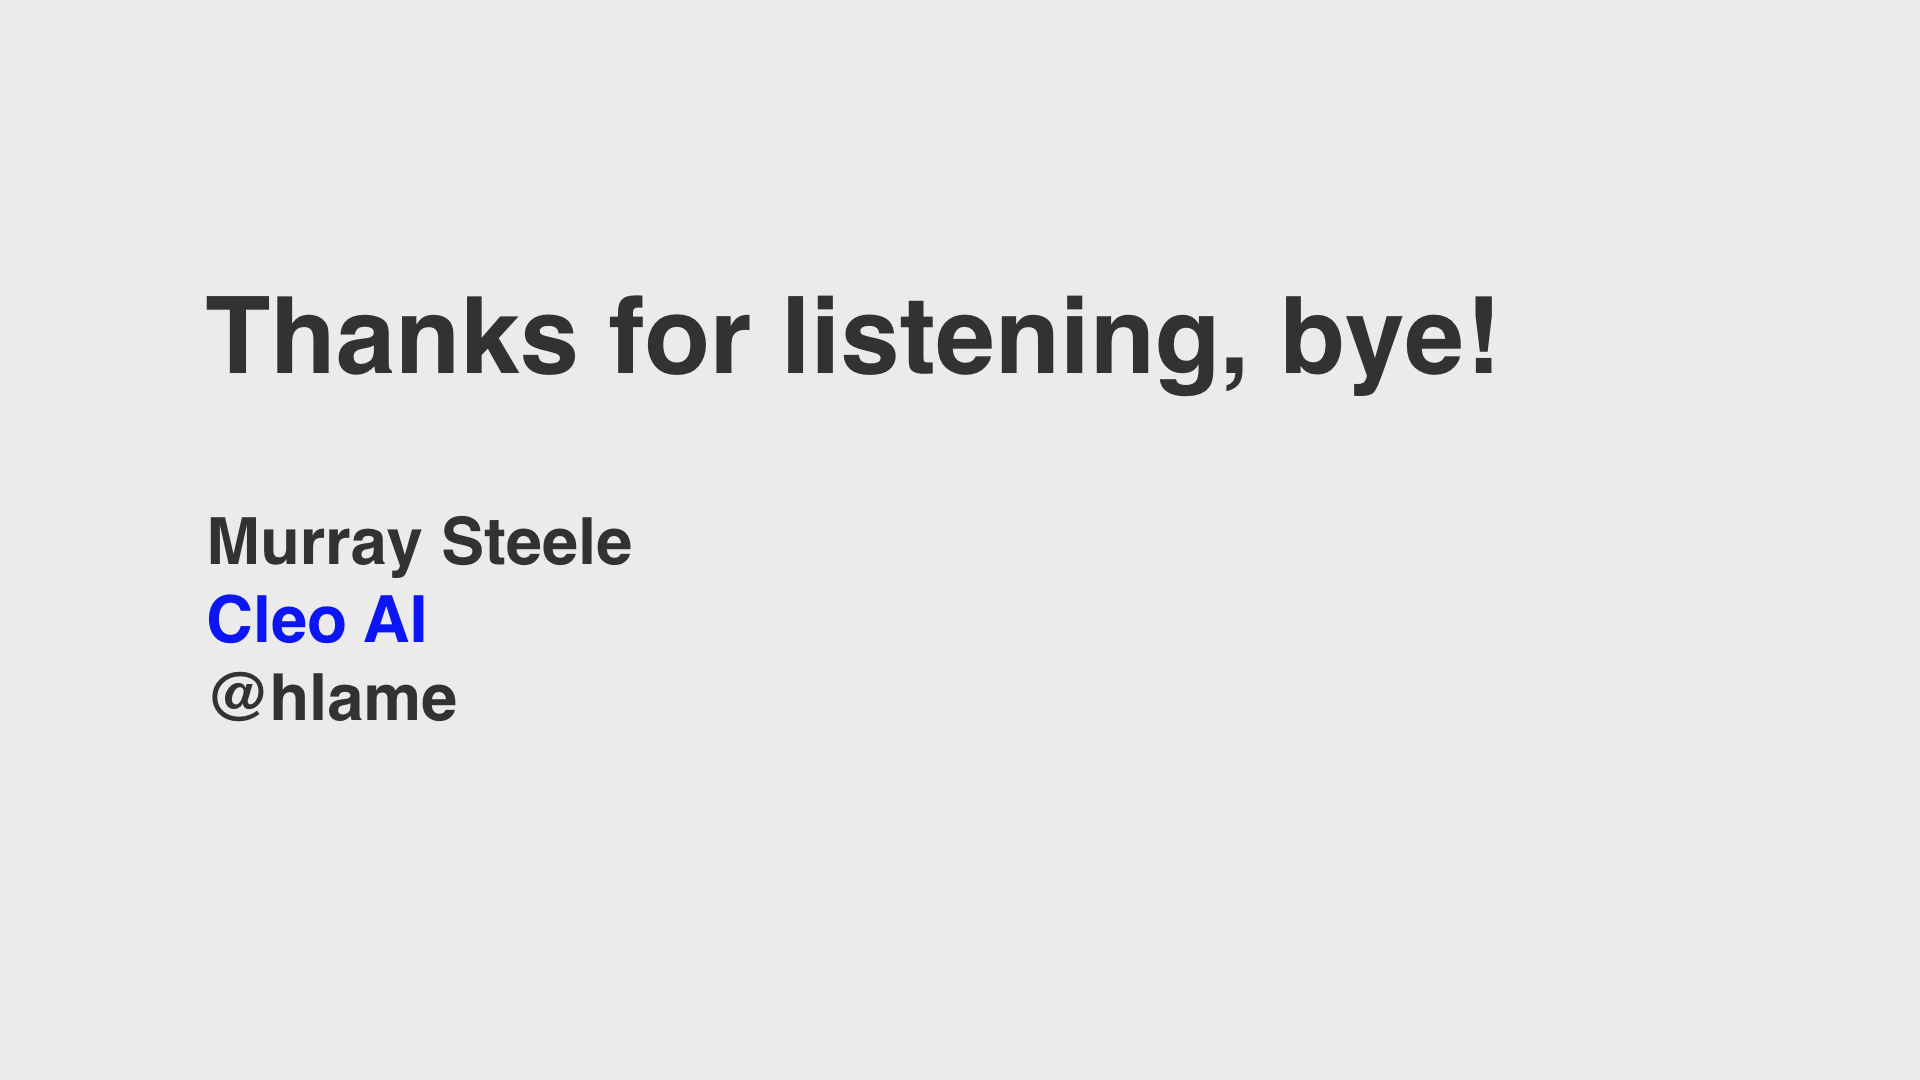 text: Thanks for listening, bye! Murray Steele, Cleo AI, @hlame